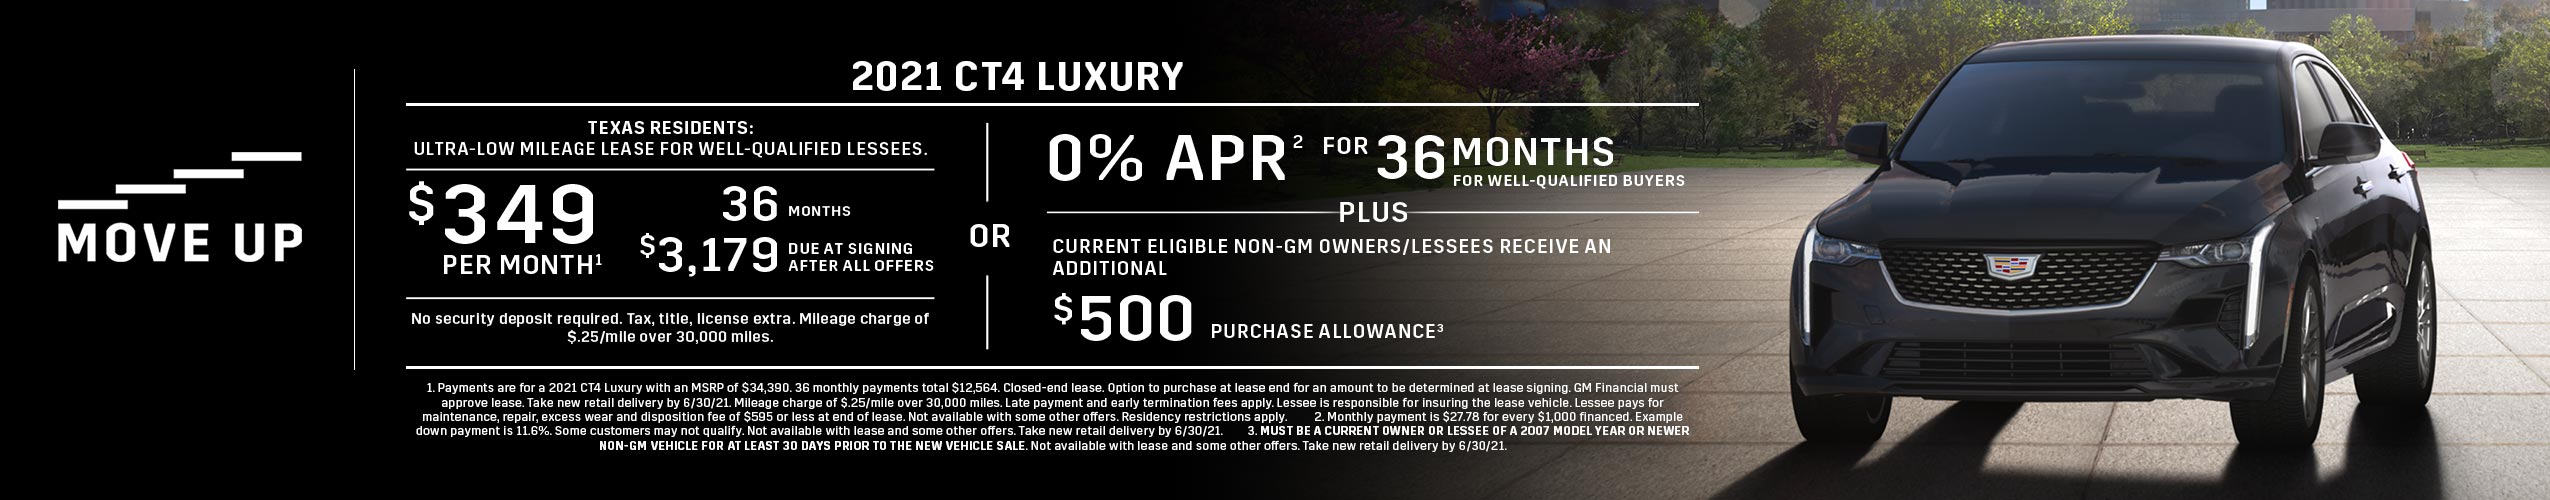 2021 CT4 Luxury: Lease or APR Offer (Image) - cbb192